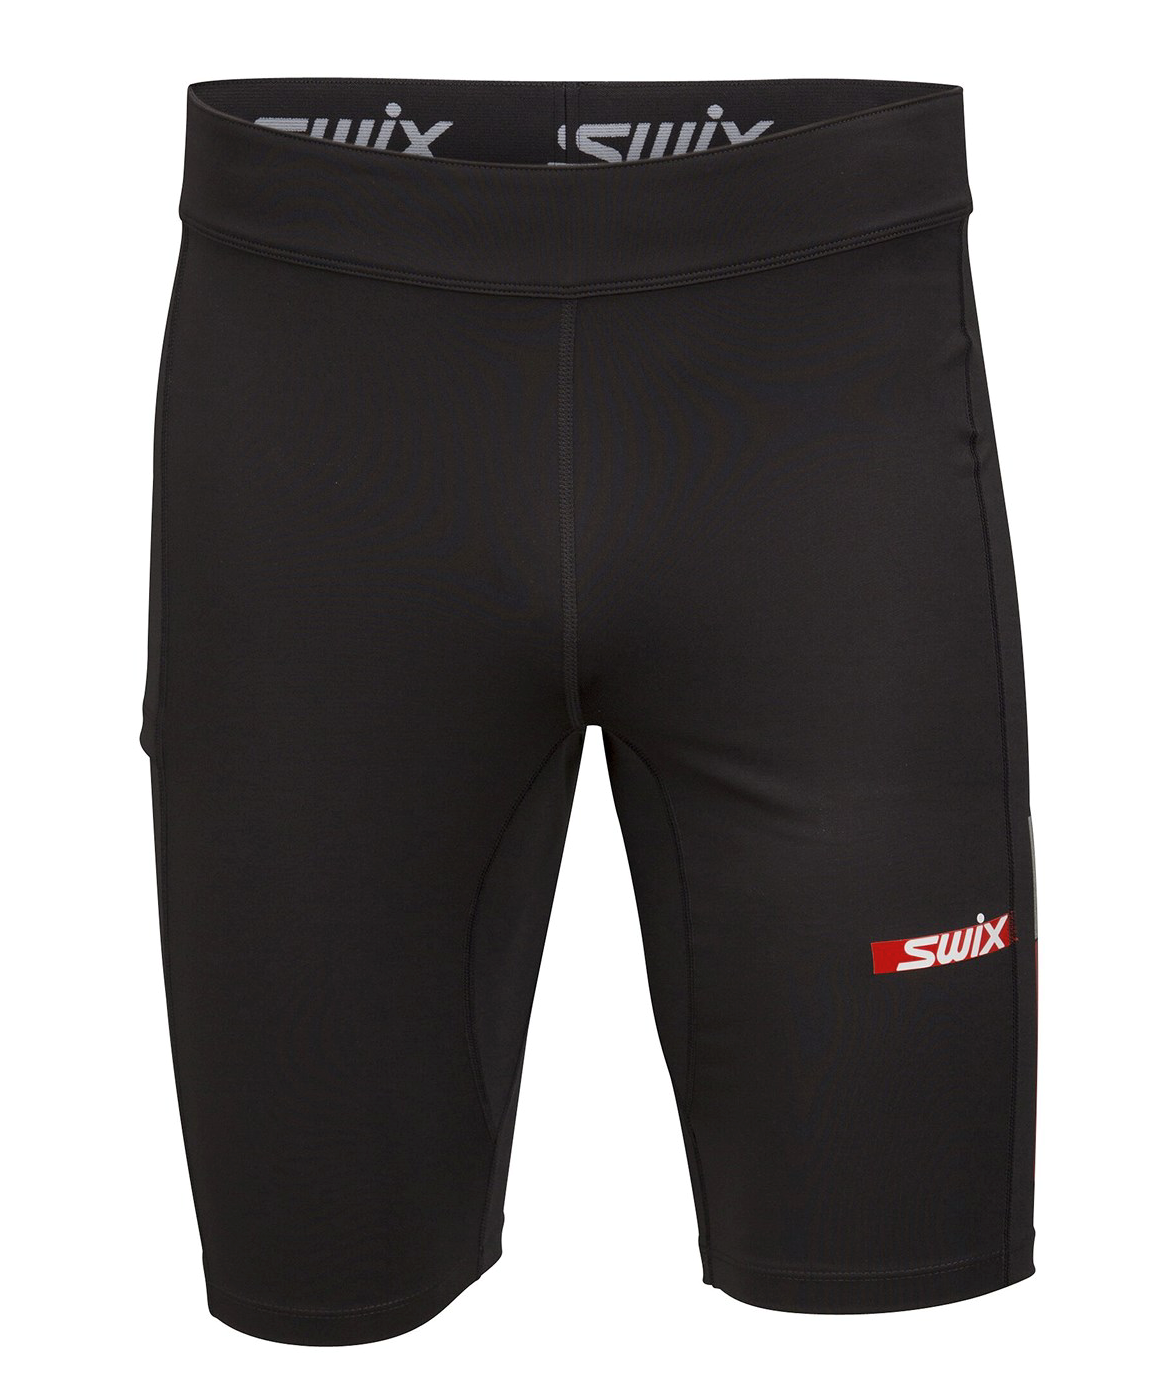 Bilde av Swix  Carbon short tights M phantom